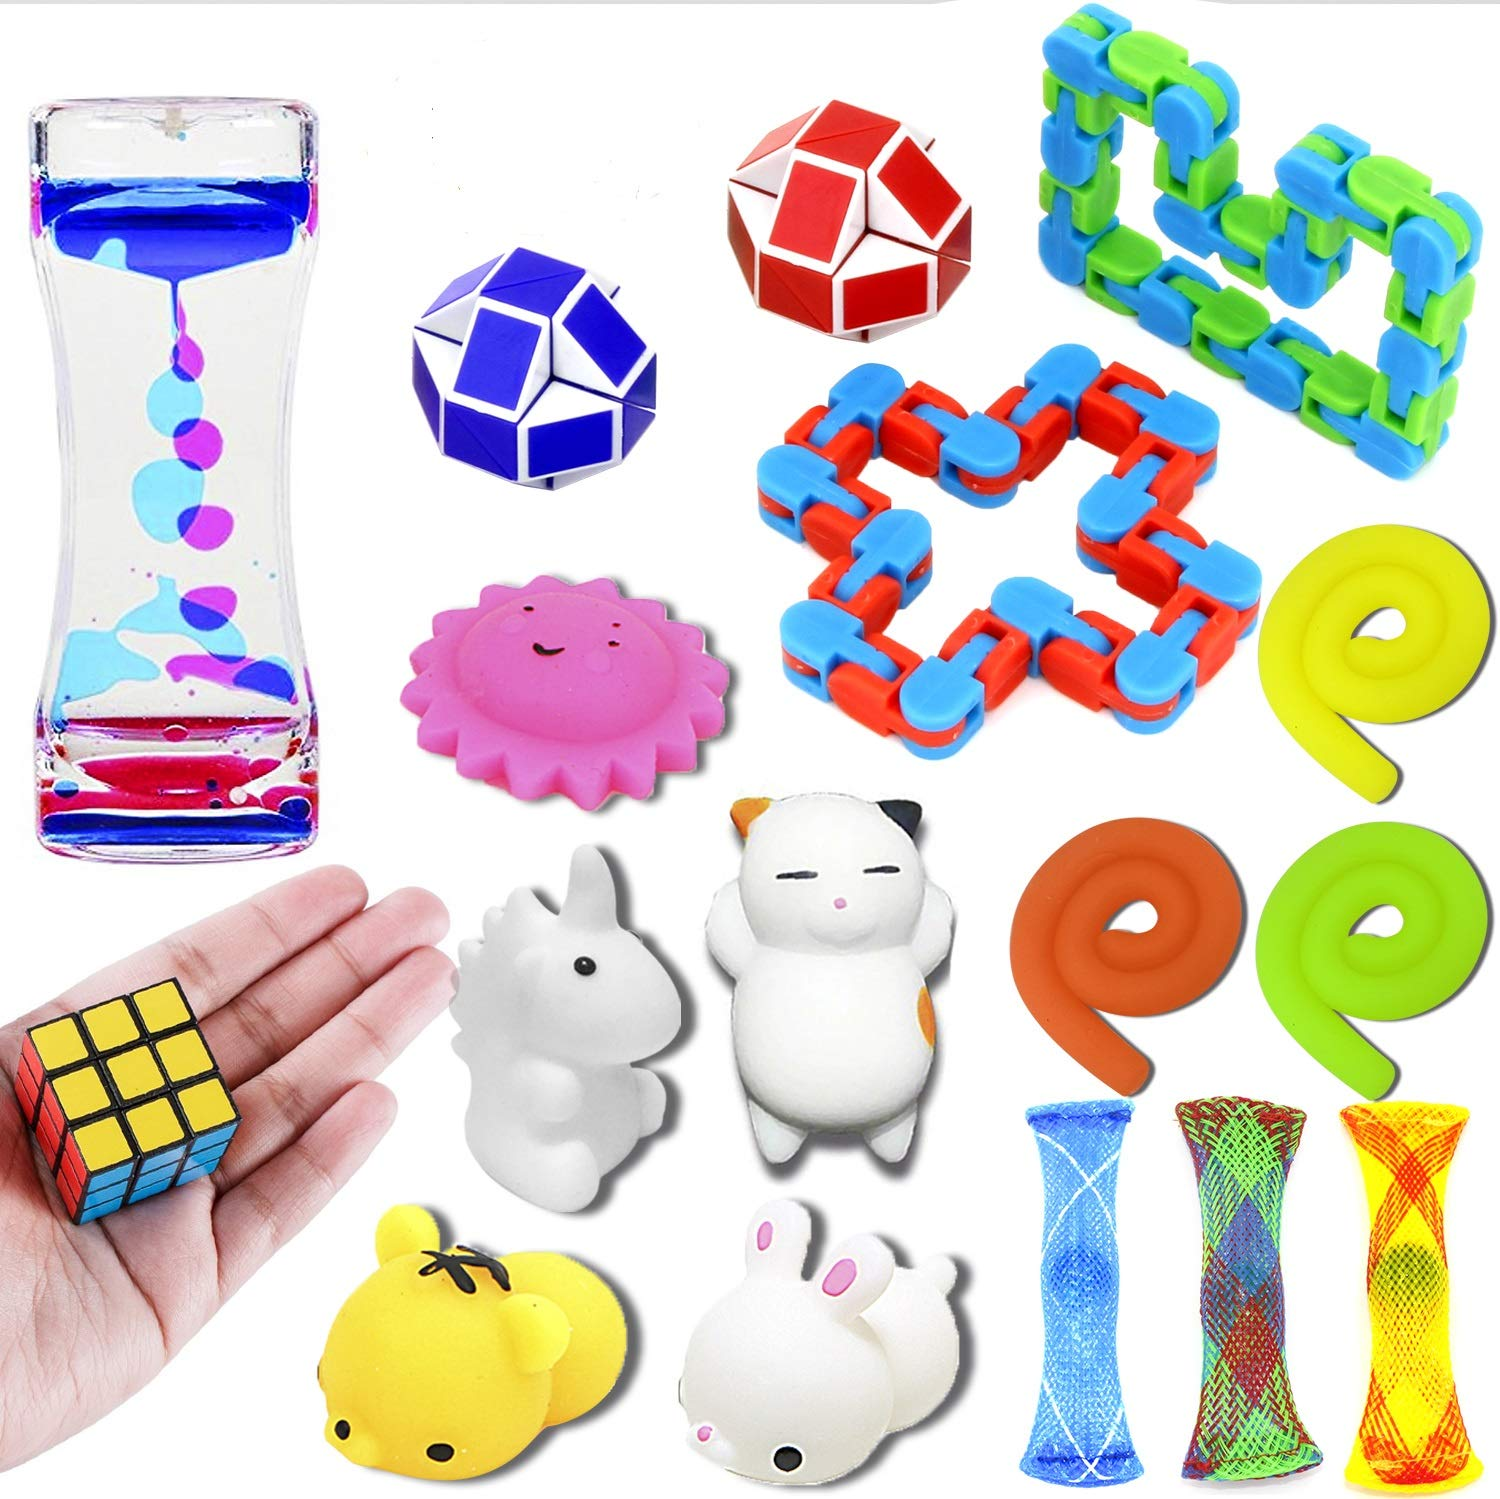 nobasco Sensory Toys Set, 17 Pack Fidget Toys Bundle Stress Relief Hand Toys Adults Kids, Stretchy String/Liquid Motion/Cube/Twist Puzzle/Mesh Marble/Mochi Squishy - Perfect ADHD ADD Anxiety Autism